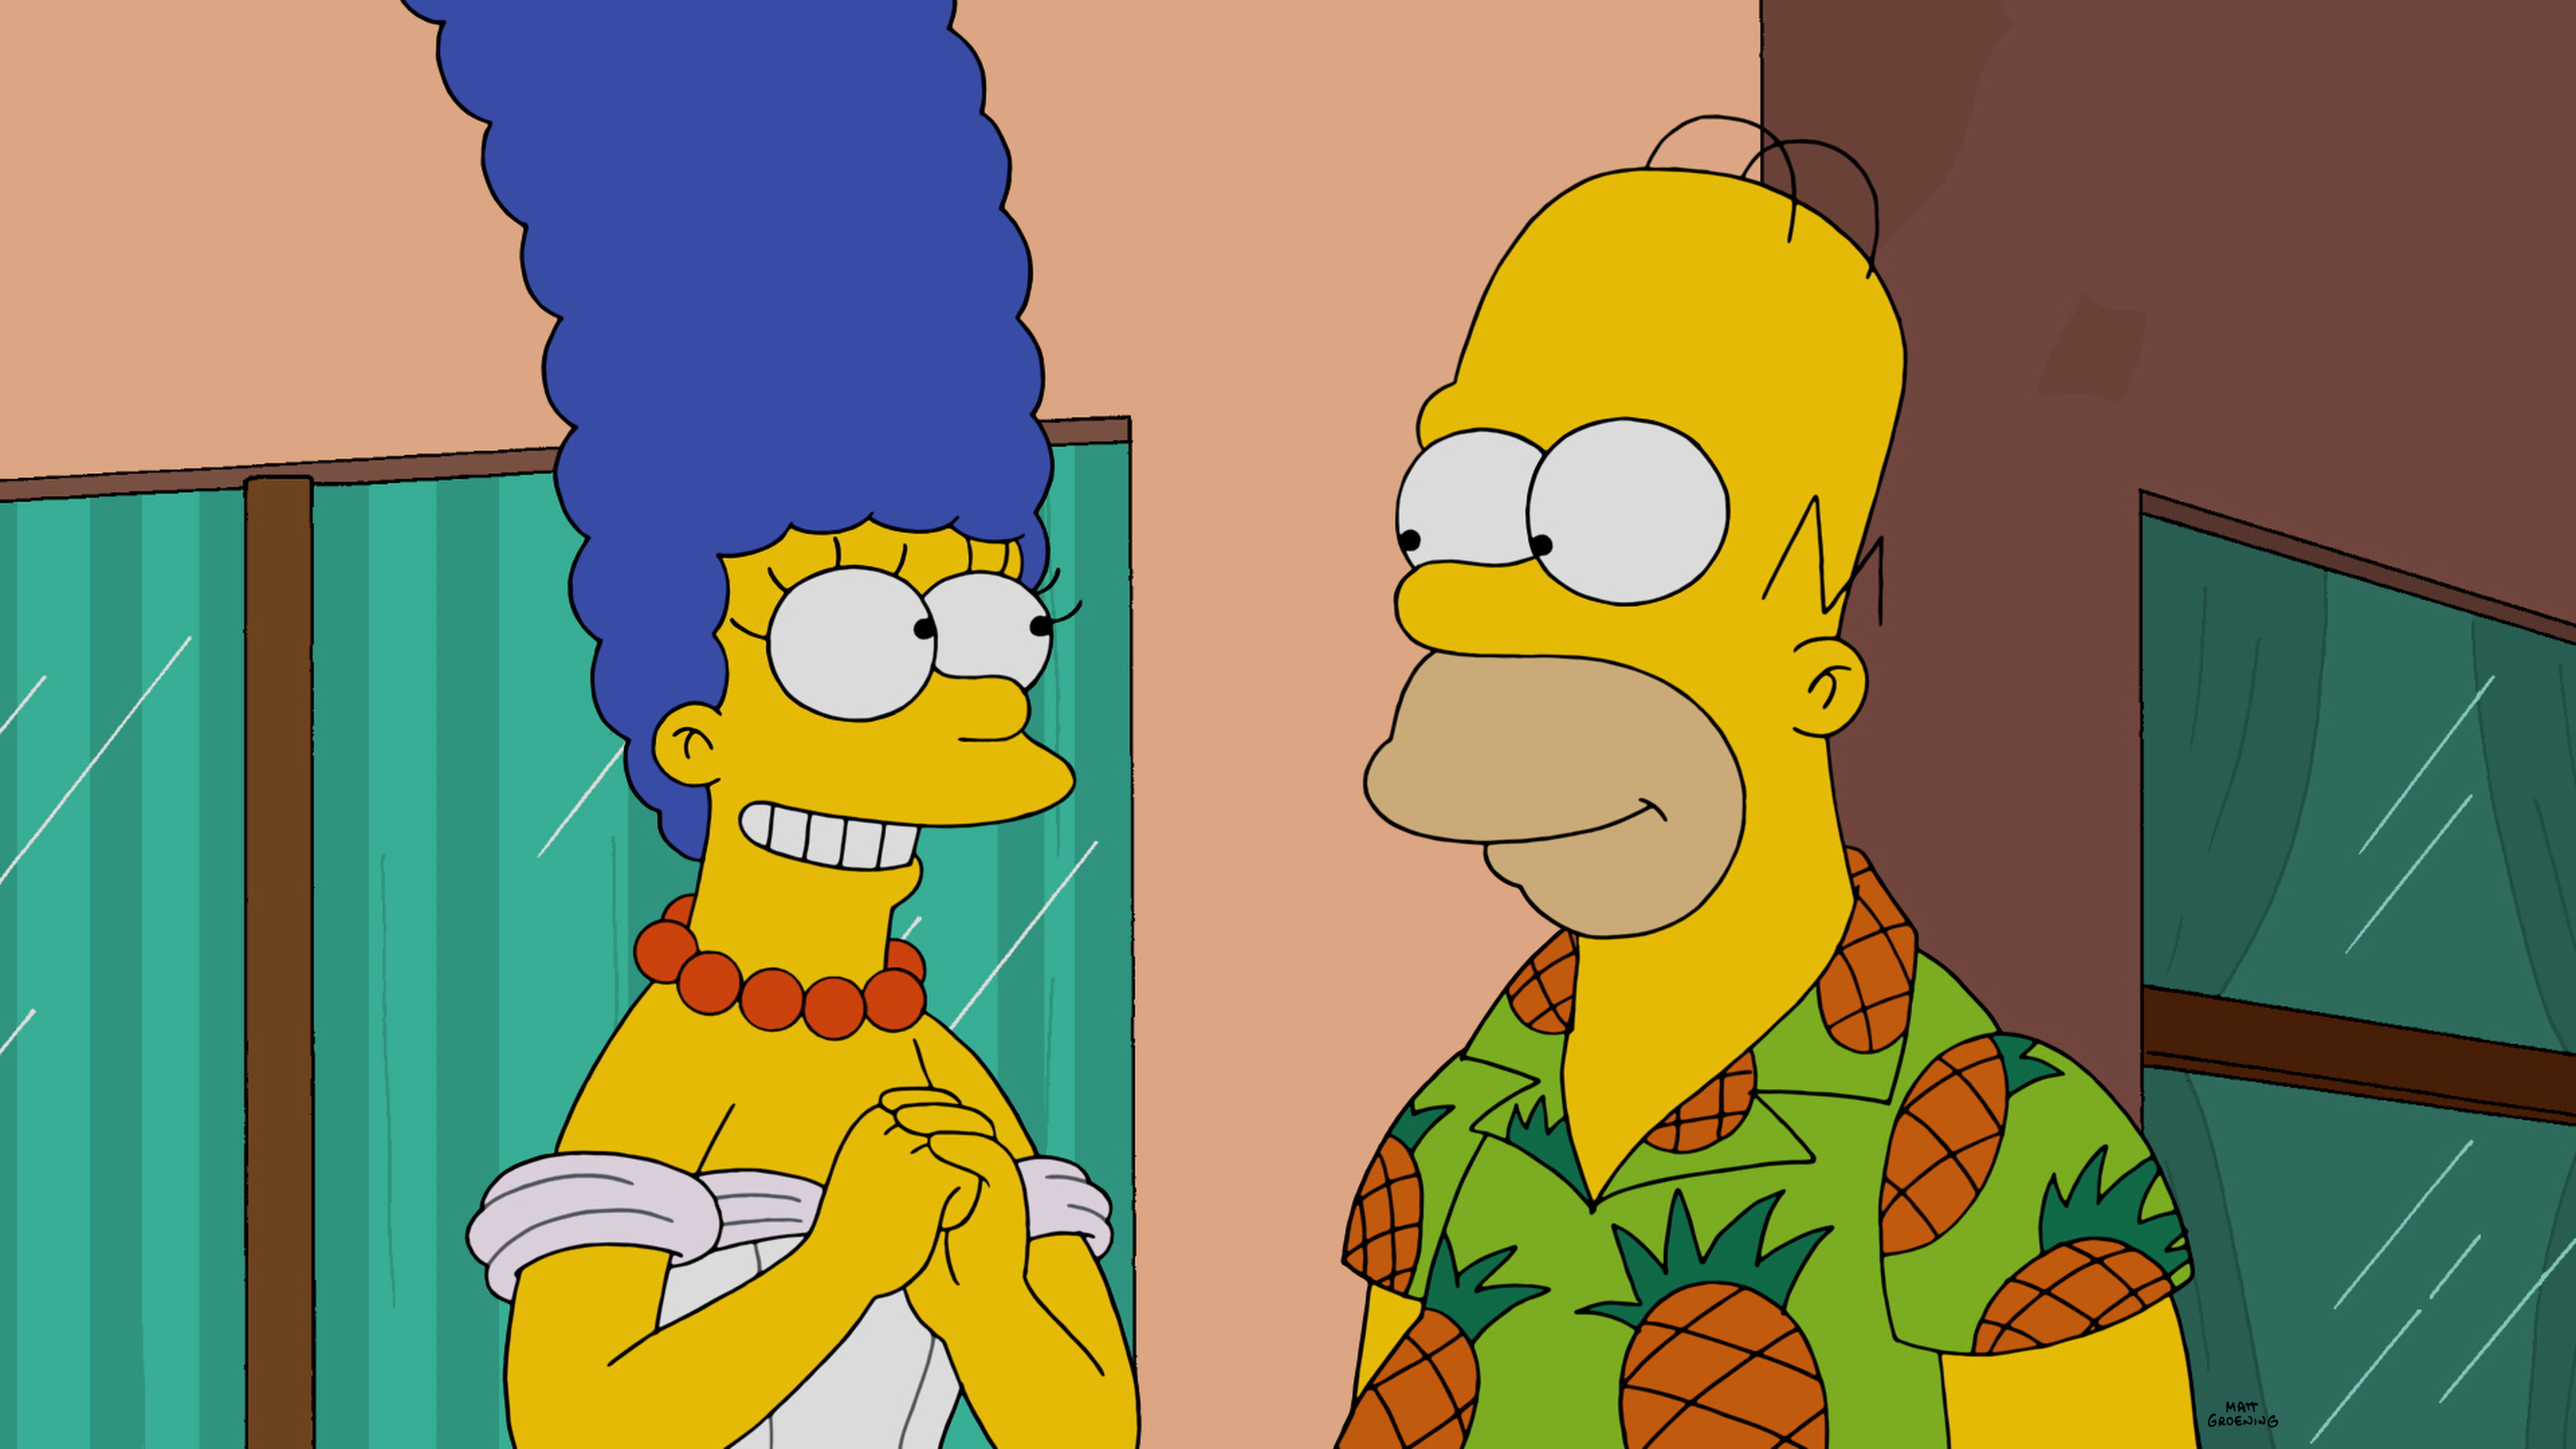 When Will The Simpsons End? Showrunner Speculates About